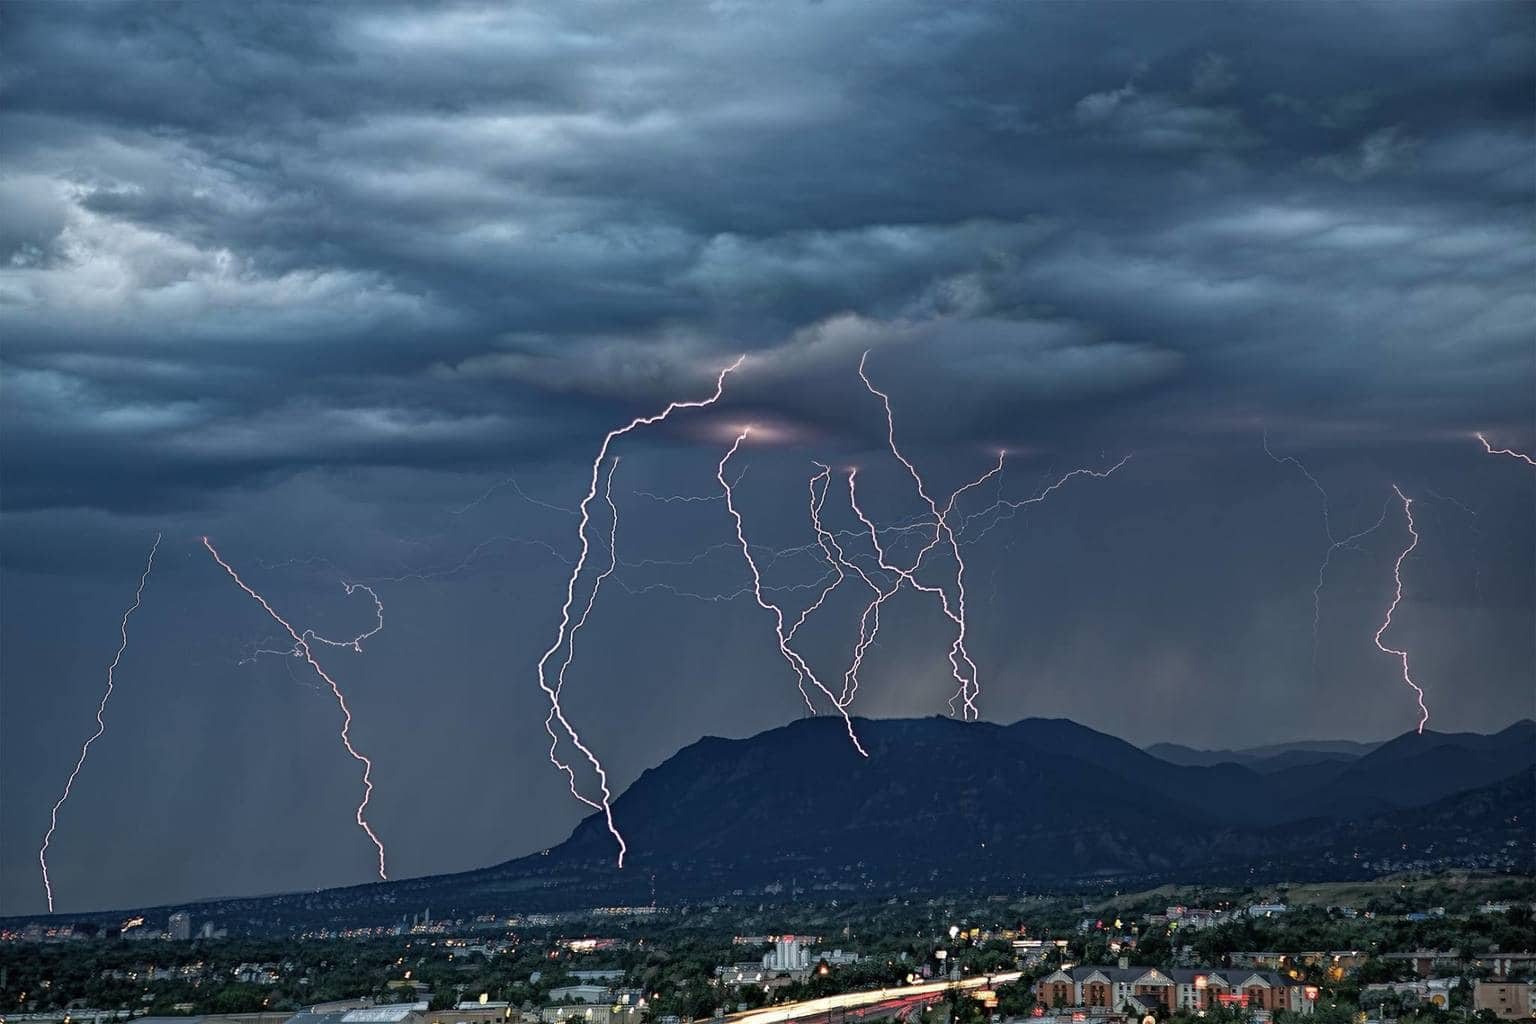 Lightning bolts over and near Cheyenne Mountain in Colorado Springs from Thursday's early evening storm. This is an 11 frame composite. 08/13/2015